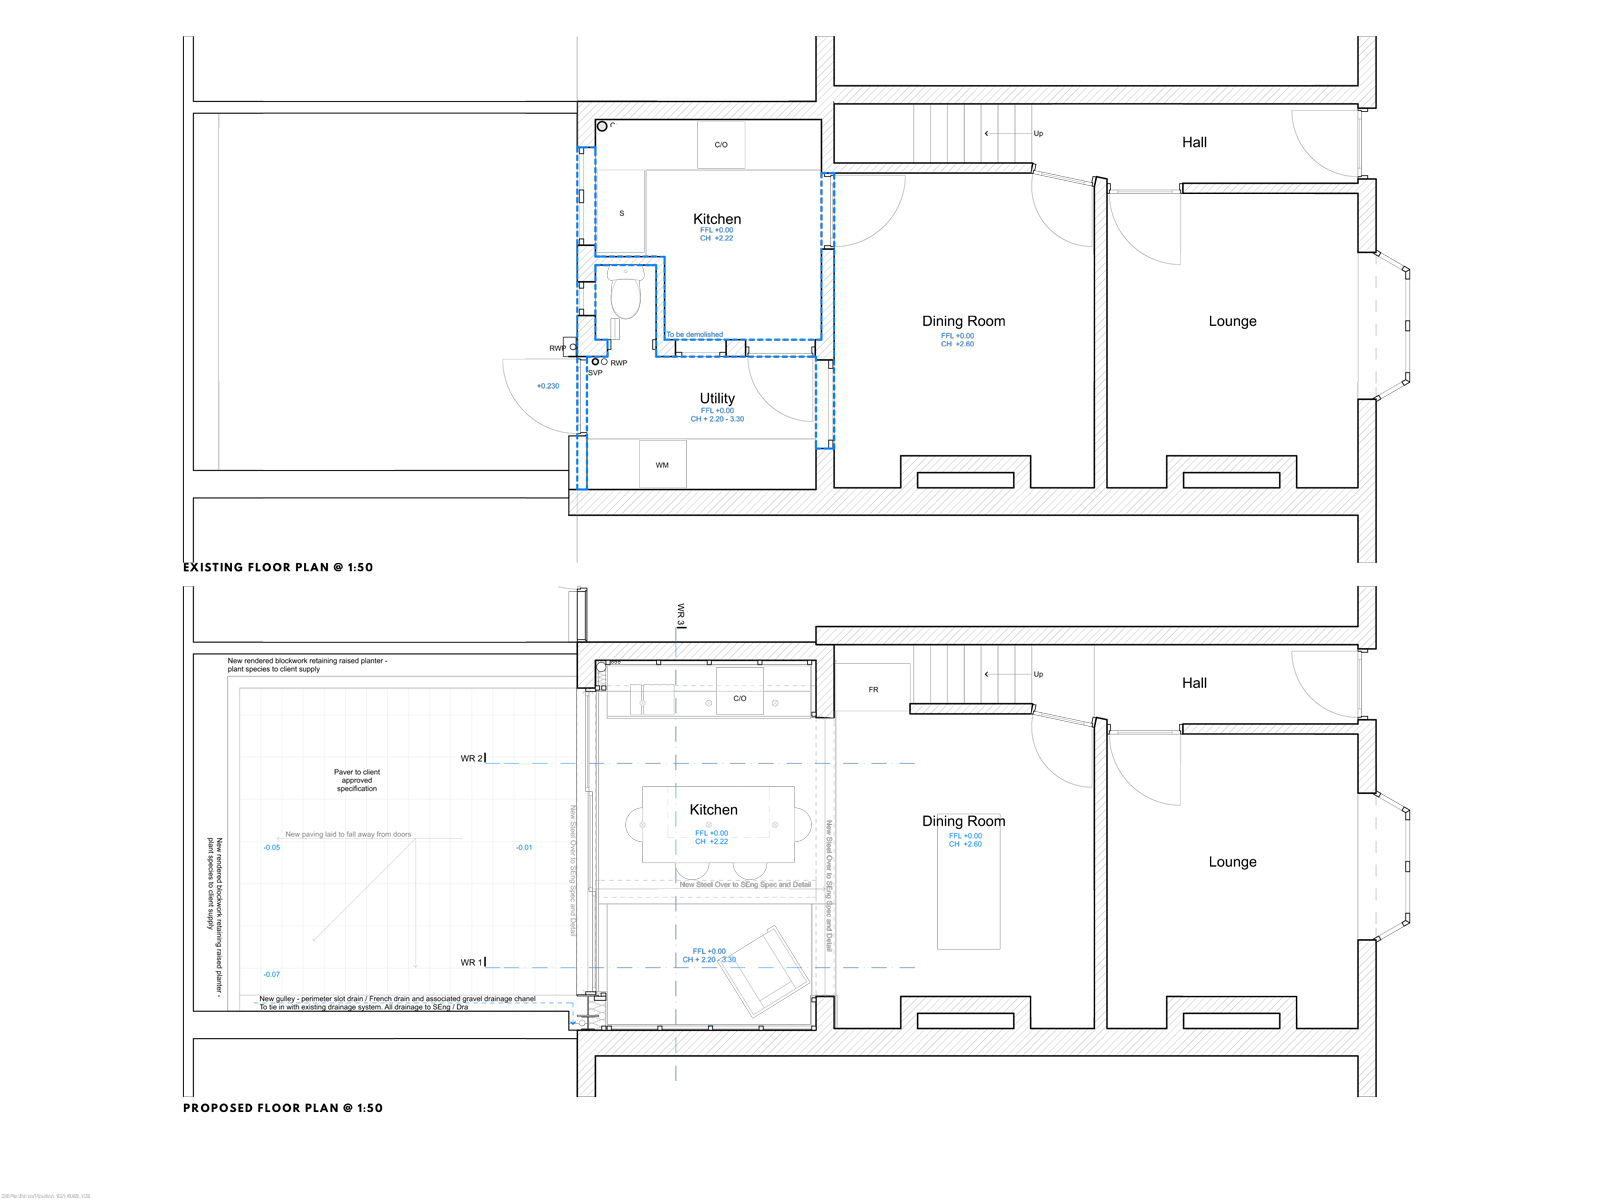 terrace-house-plans-before-and-after